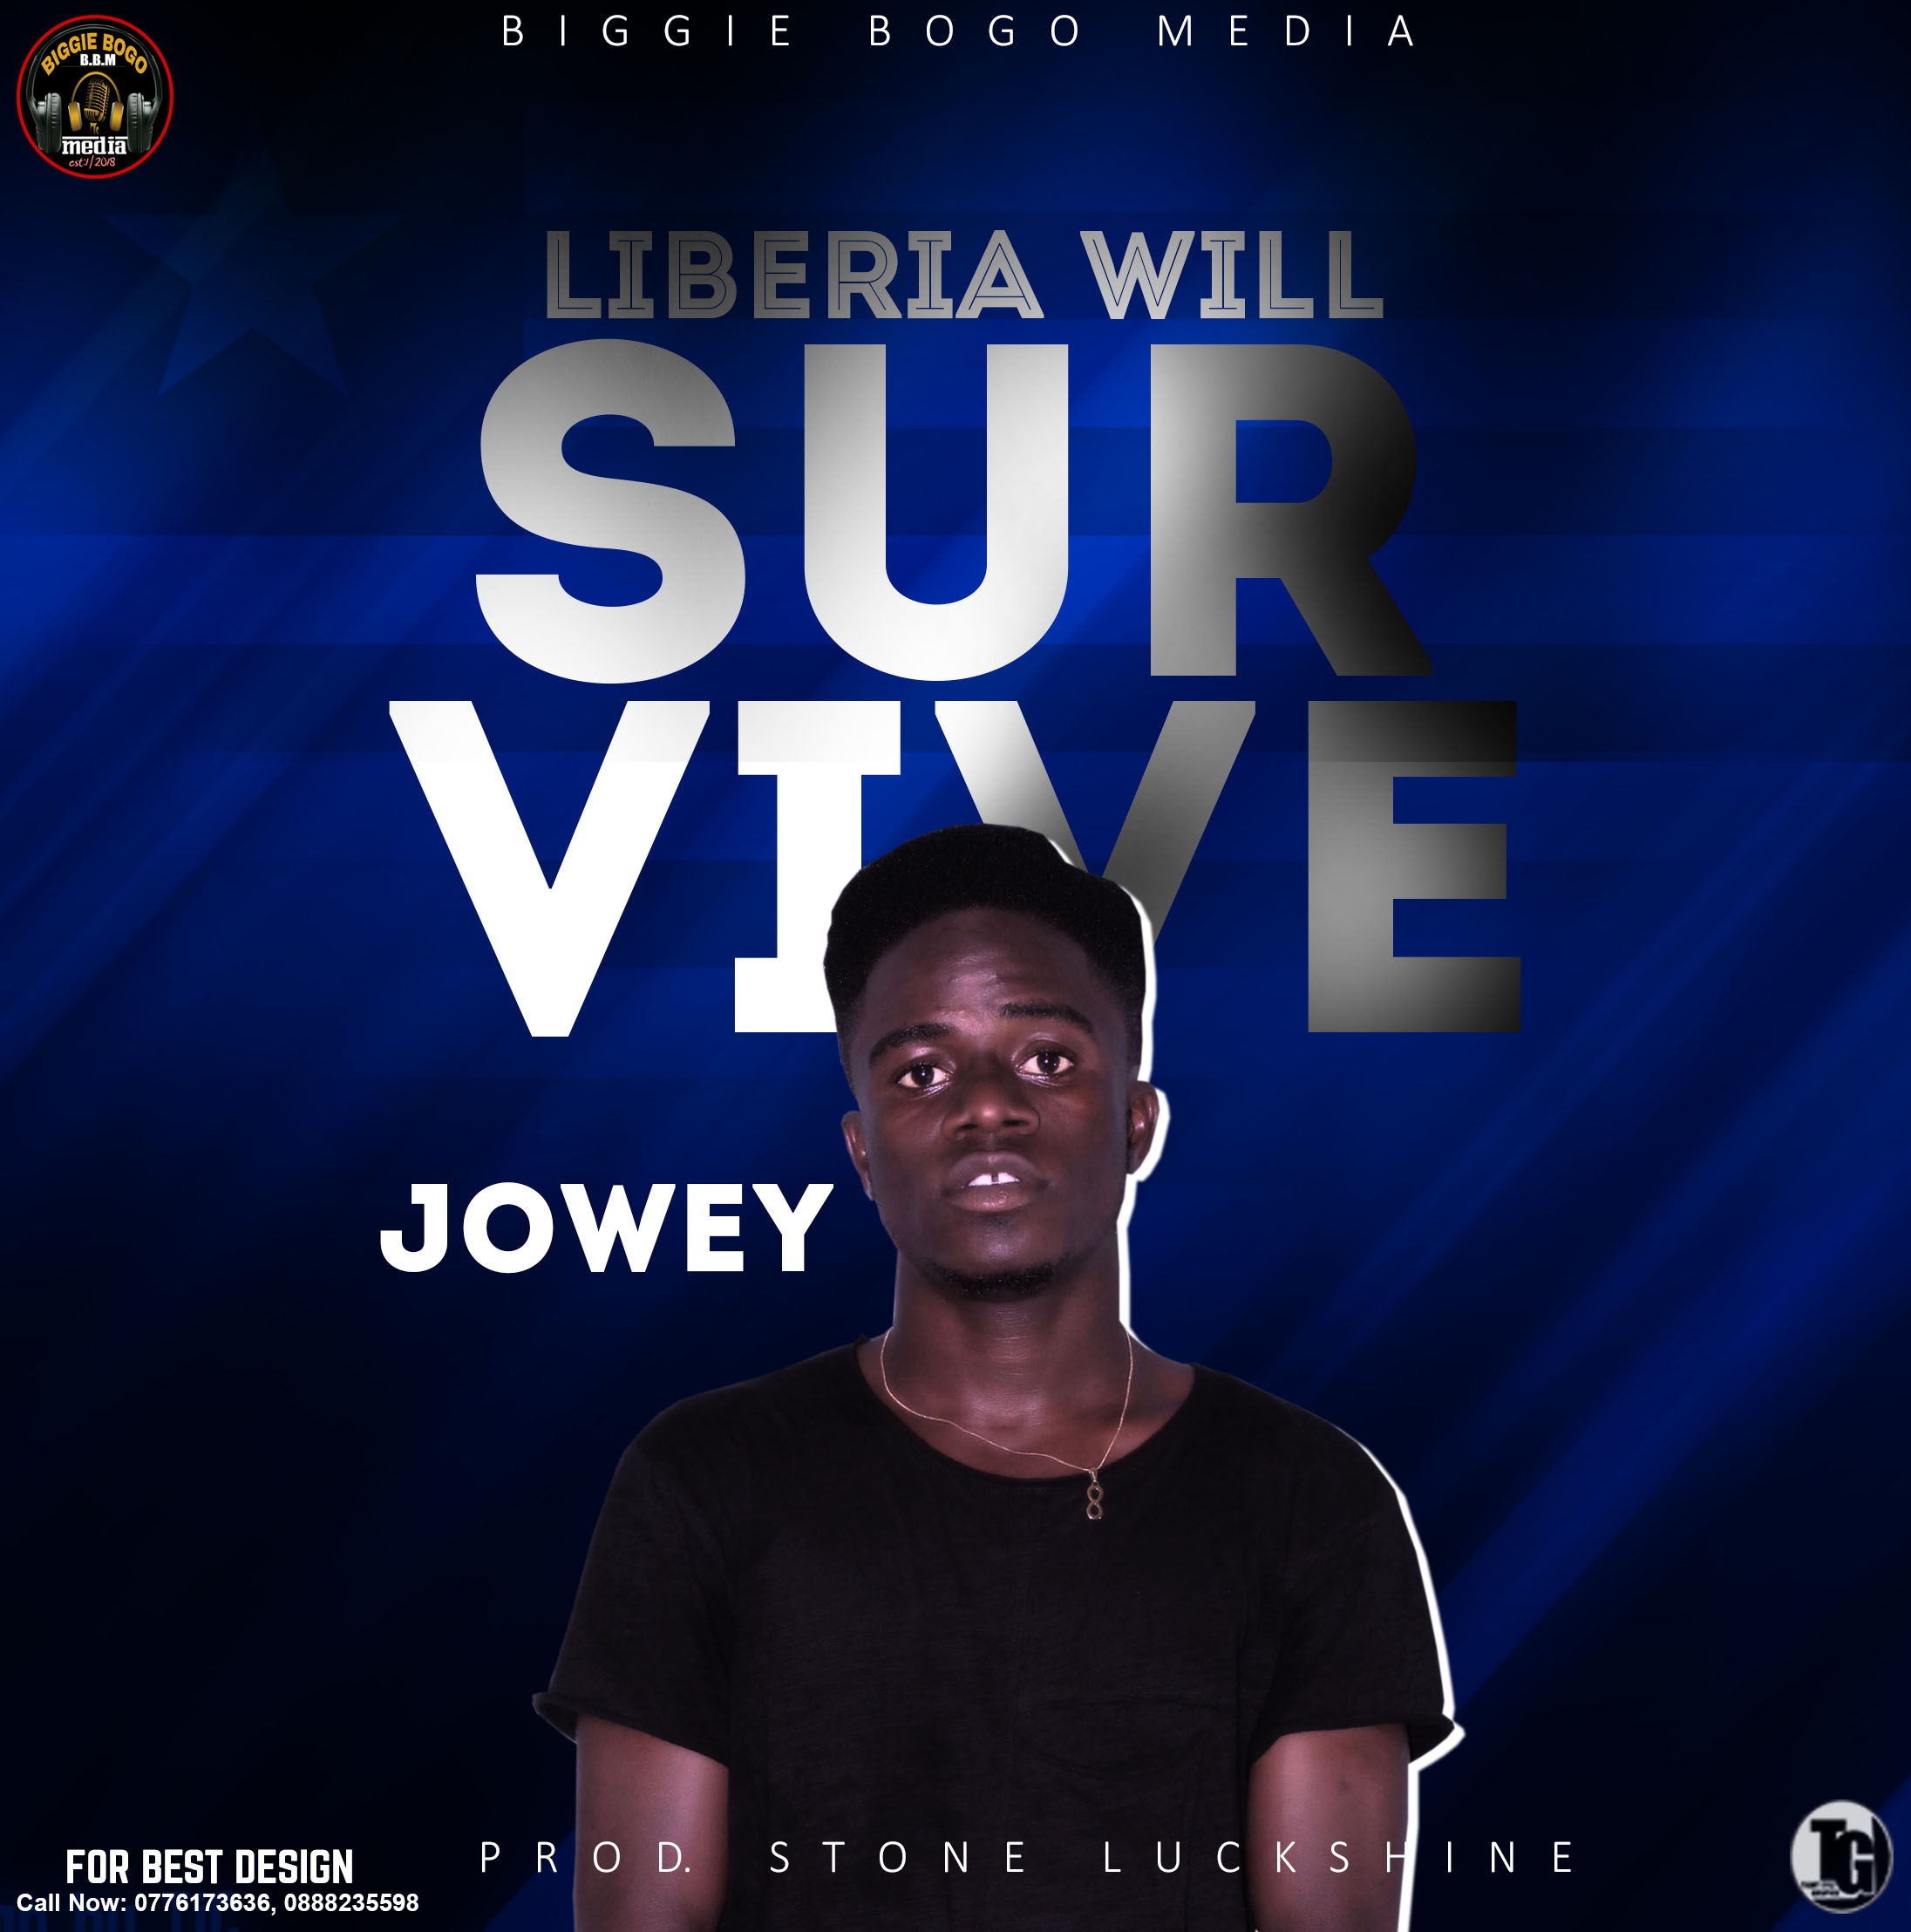 Jowey-Liberia-Will-Survive-Prod.-Stone-Luckshine.jpg